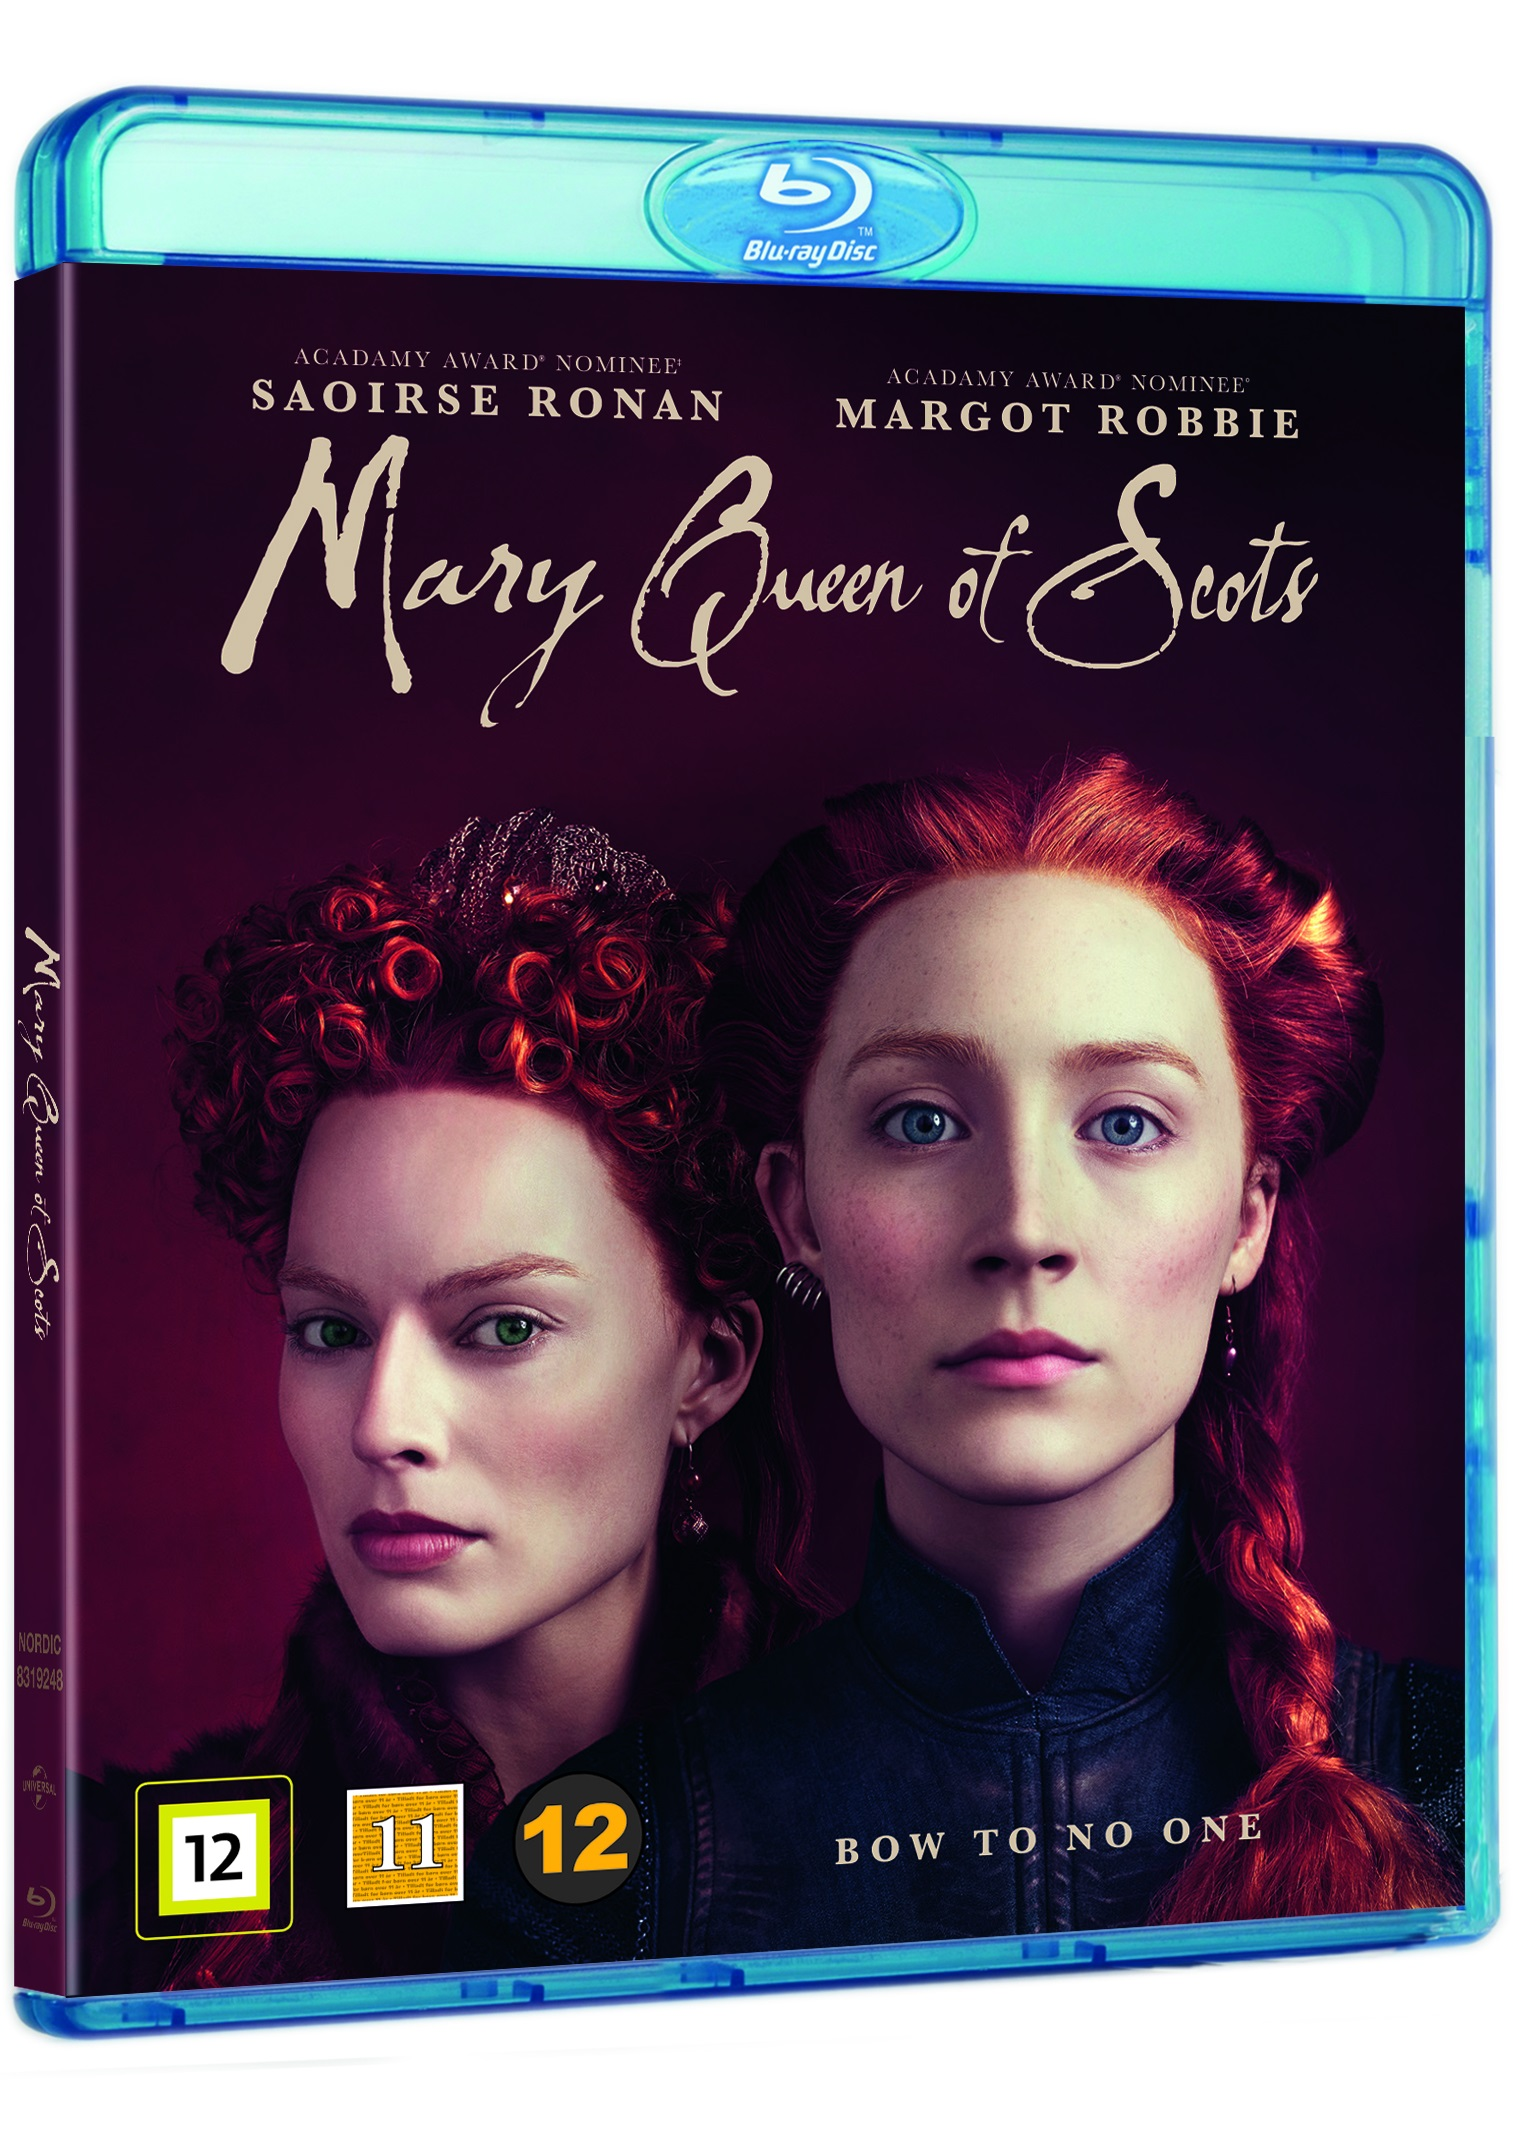 Mary Queen of Scots -  - Film -  - 5053083192488 - 19/9-2019